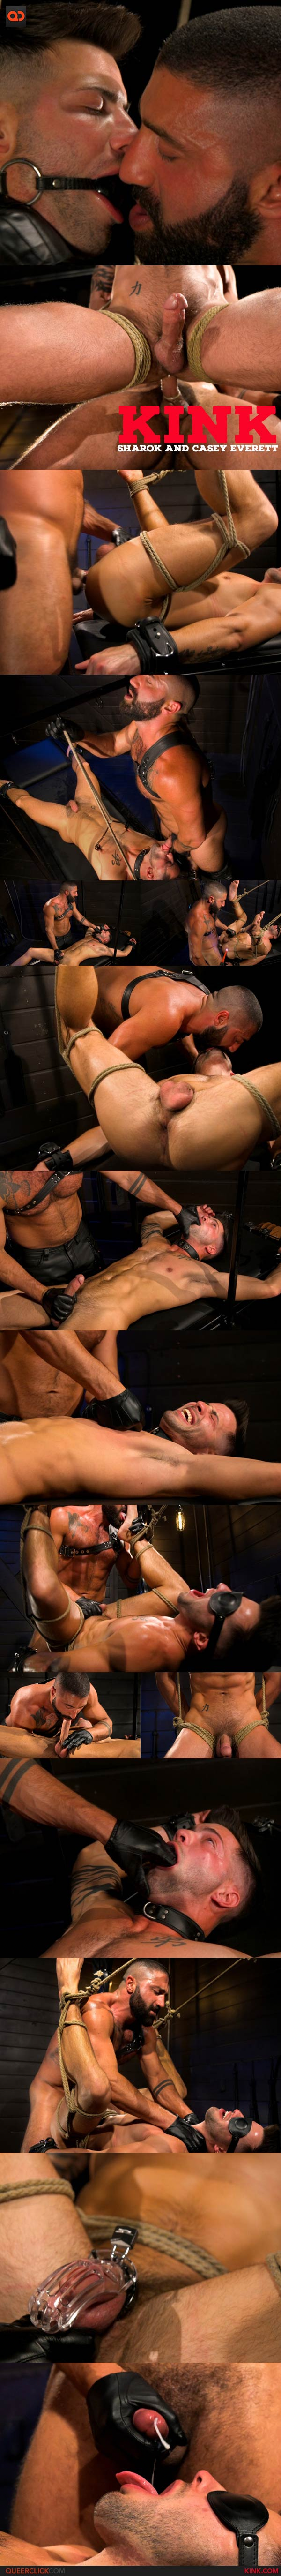 Kink: Casey Everett Worships New Leather-Clad Master